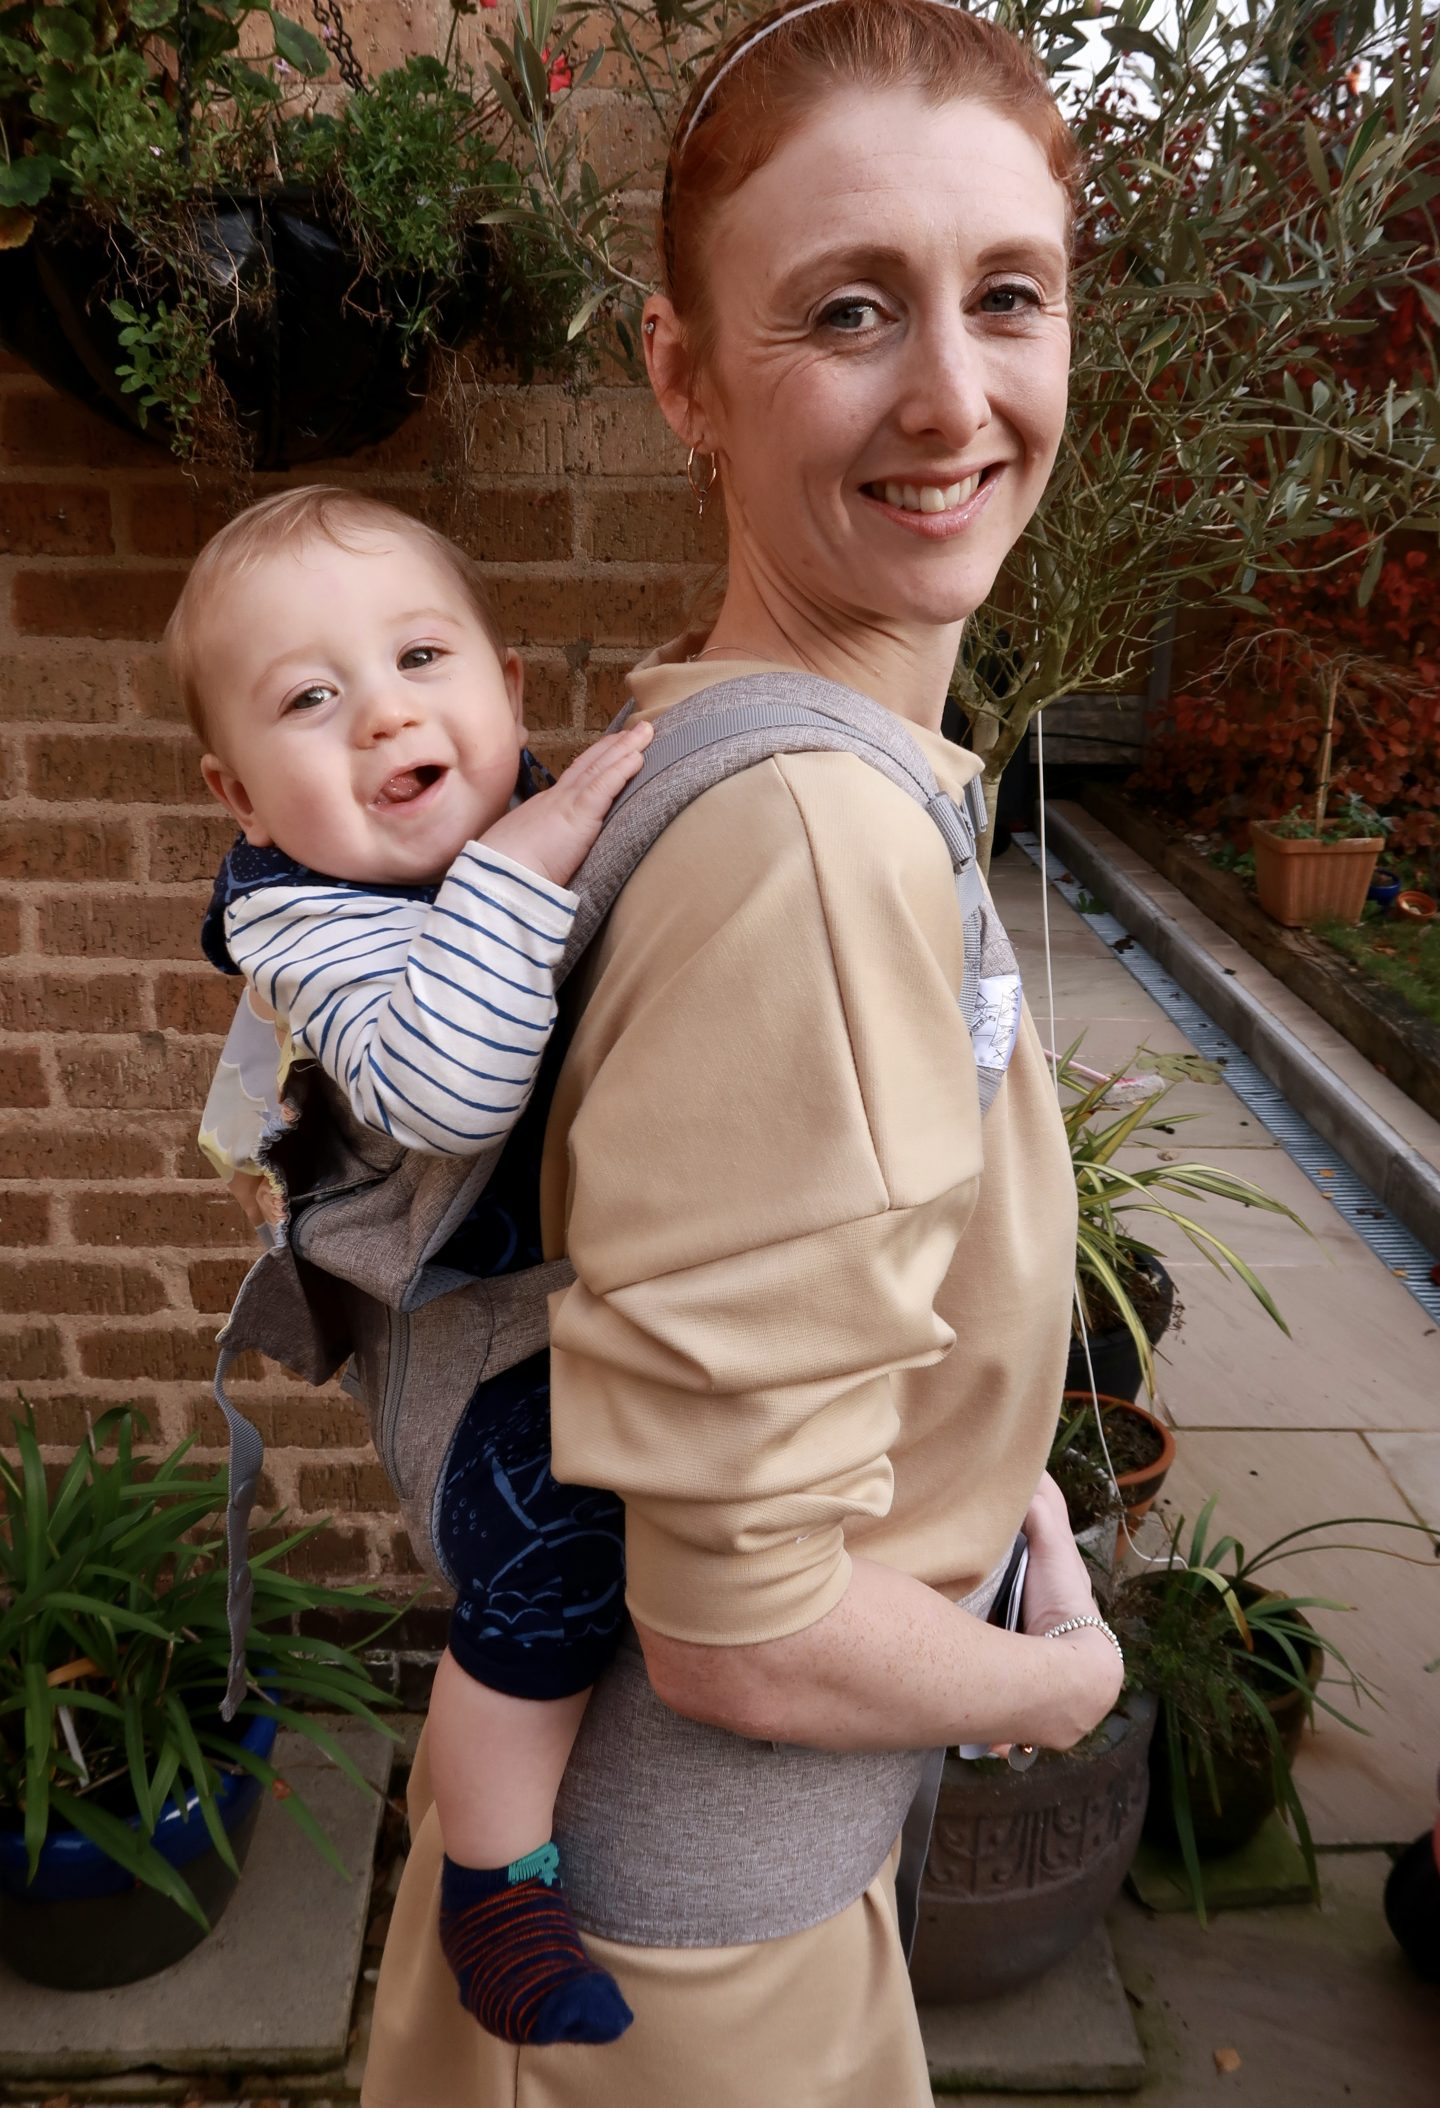 Lictin baby carrier mum with baby on her back